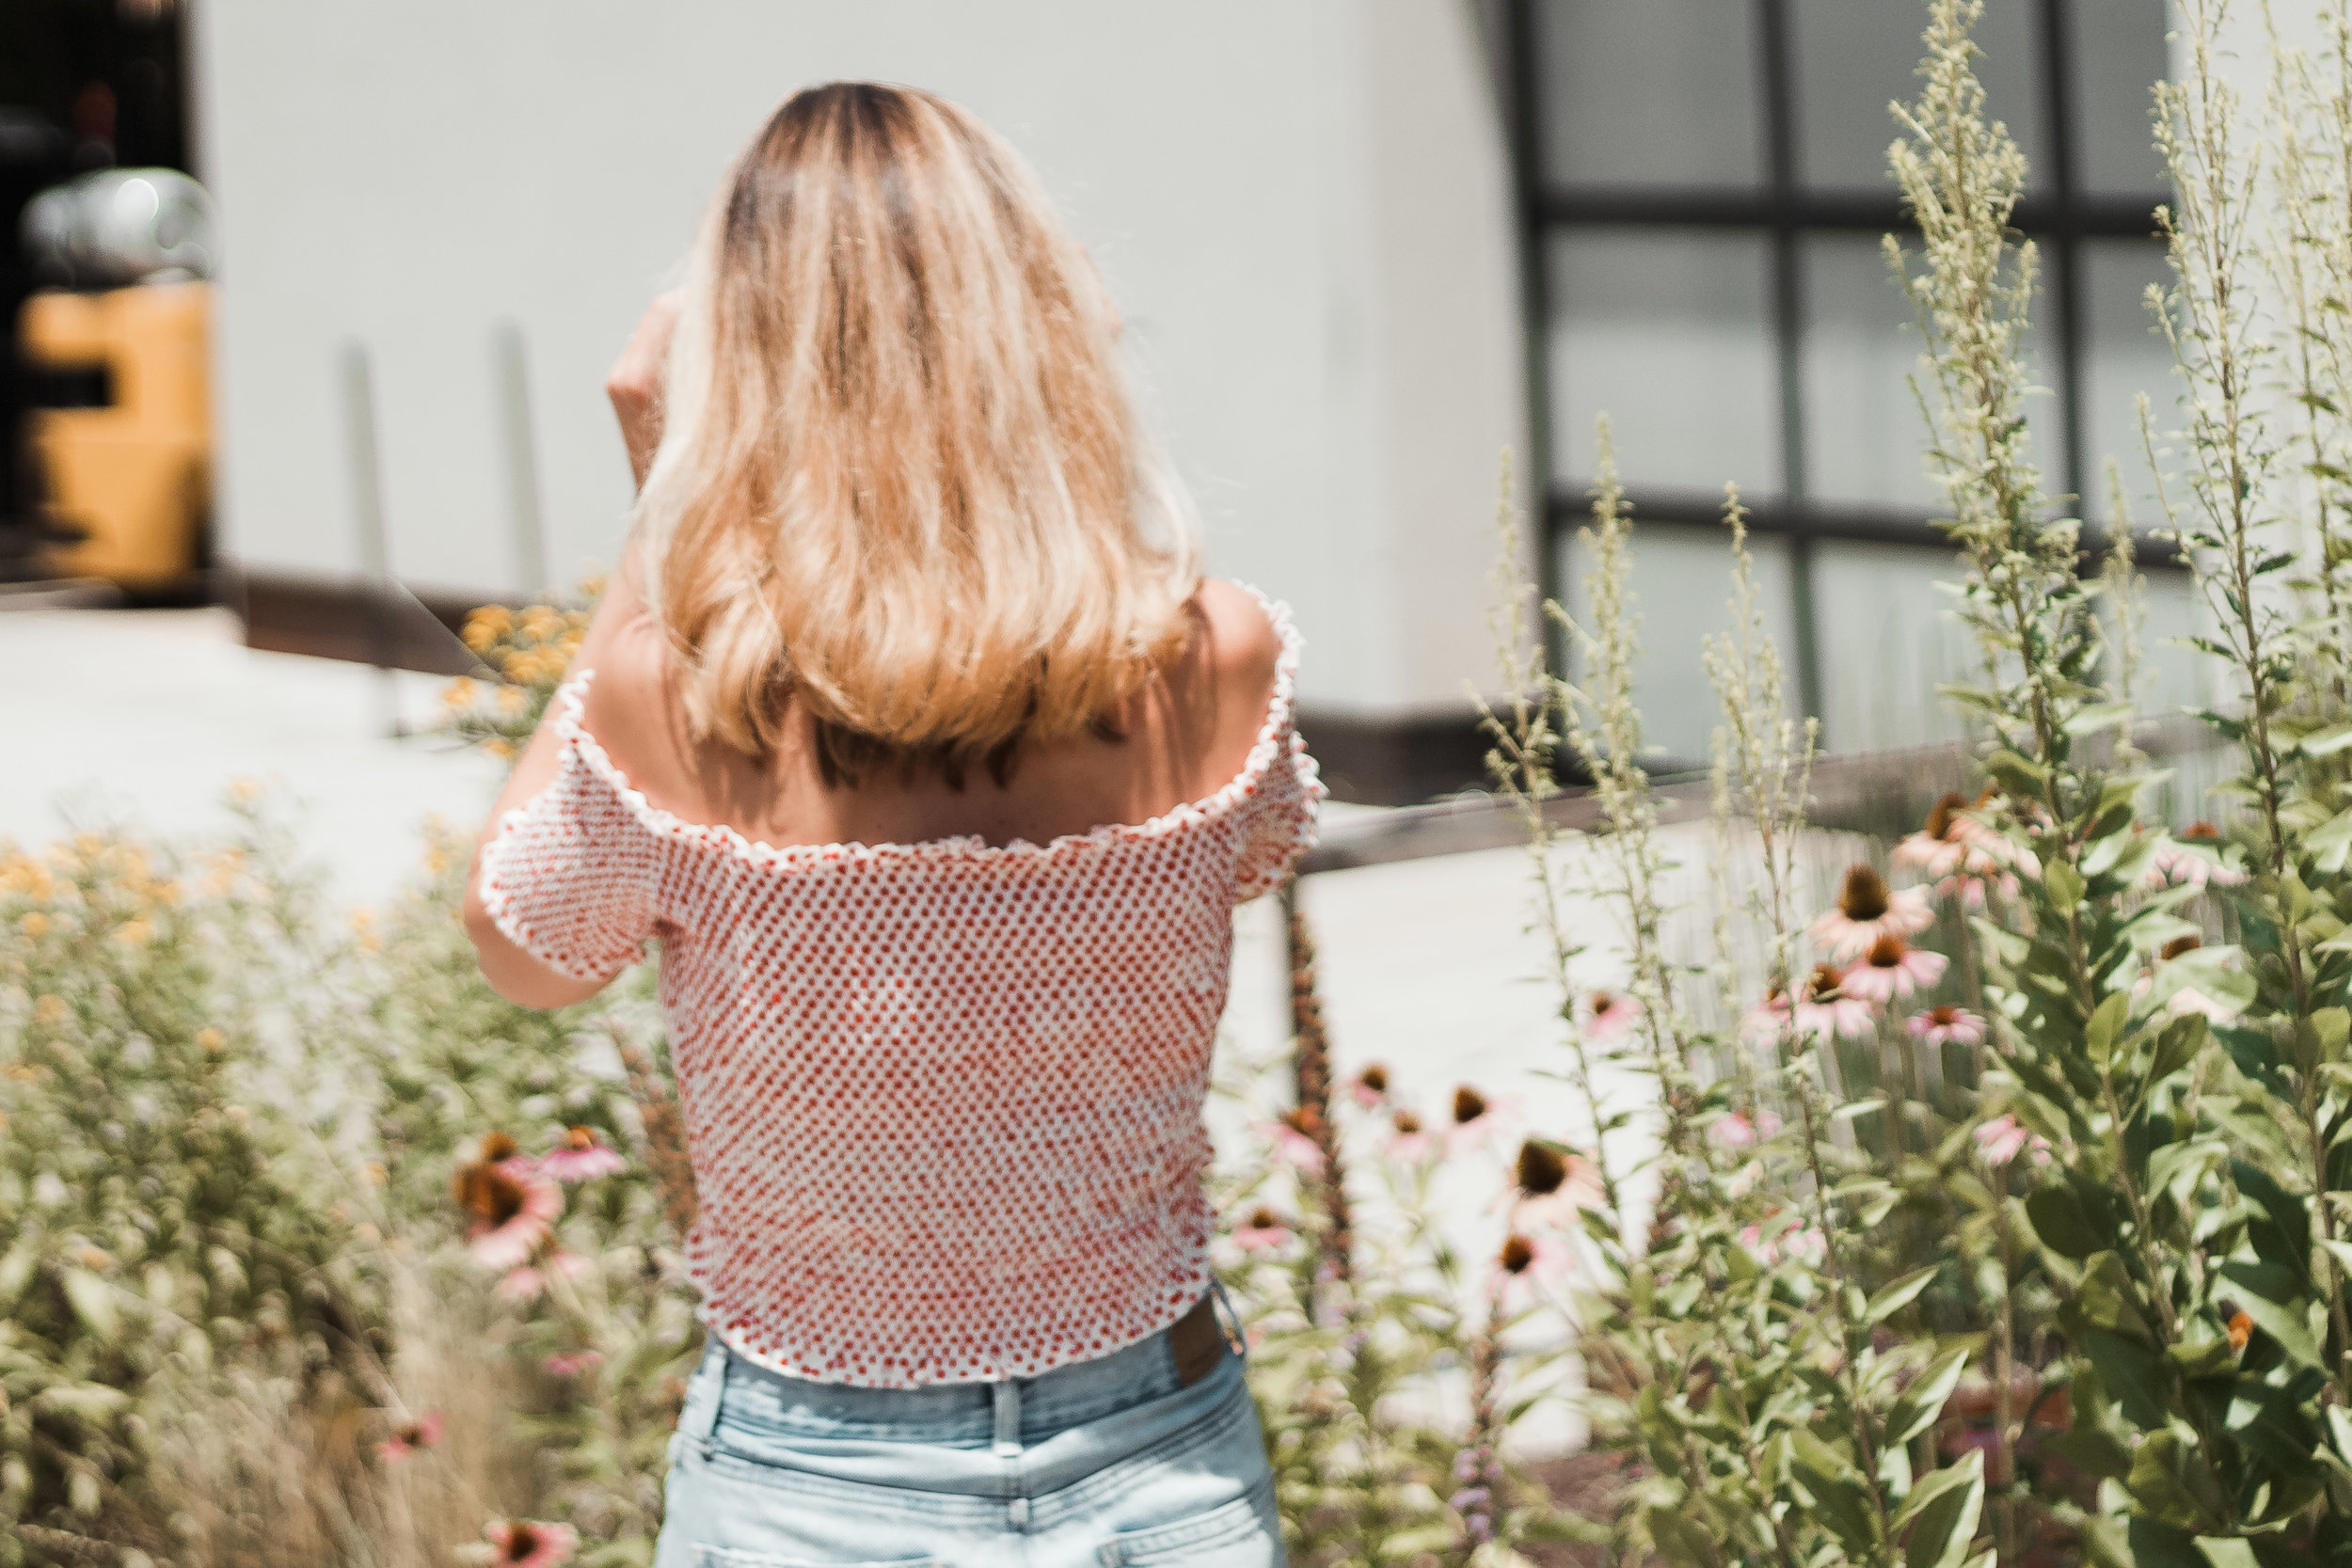 Off The Shoulder Top | The Simplistic Chic